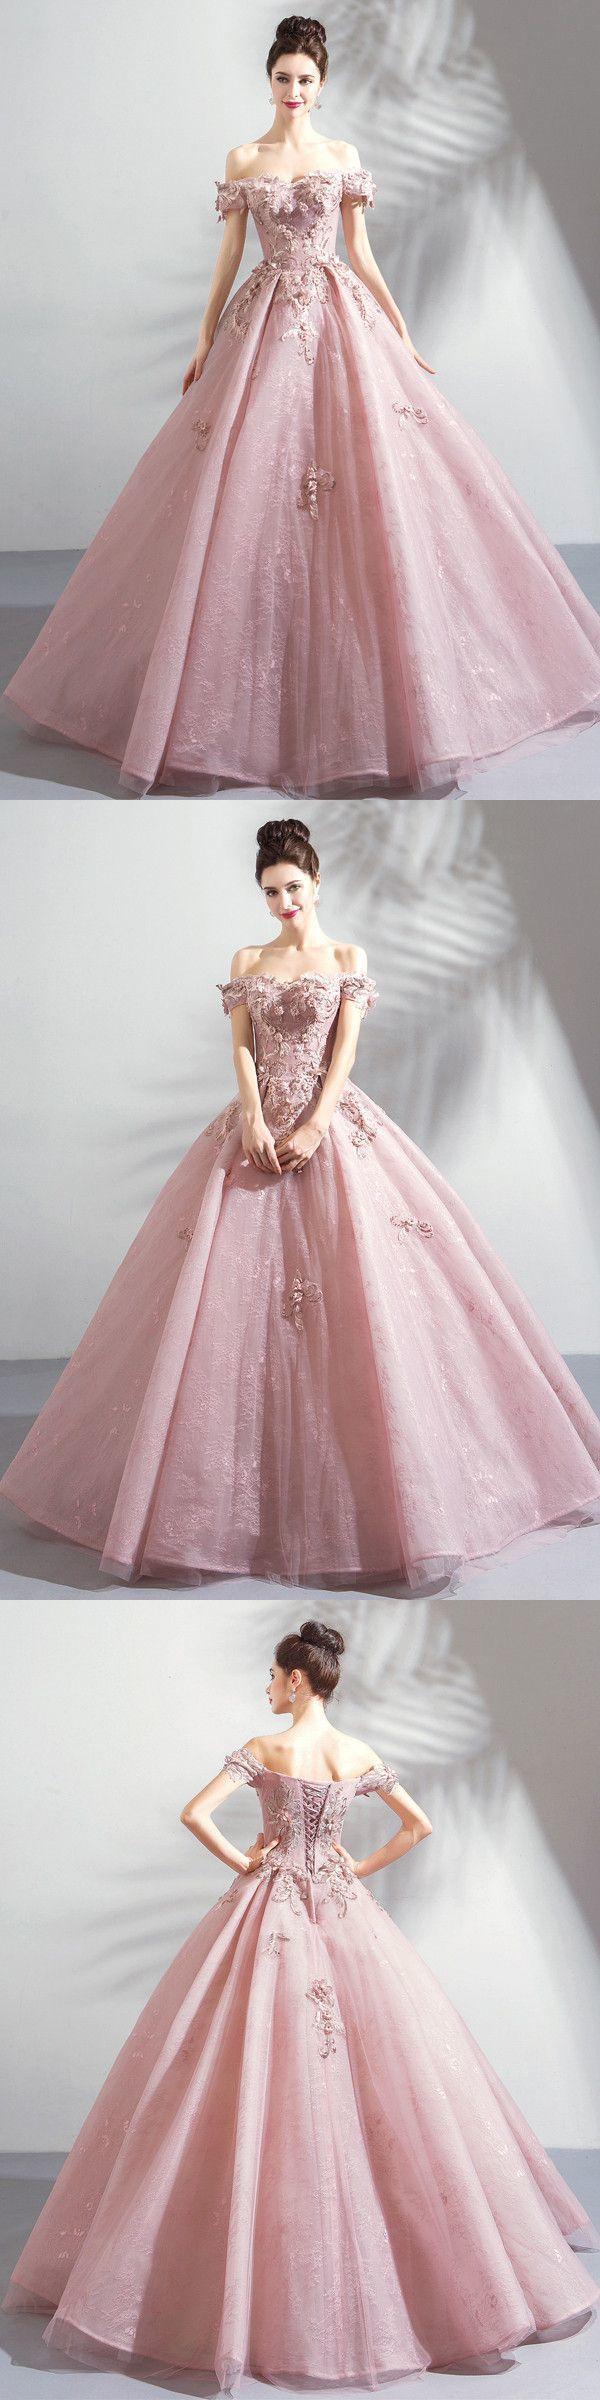 Off Shoulder Tulle Prom Dresses, Formal Evening Dress